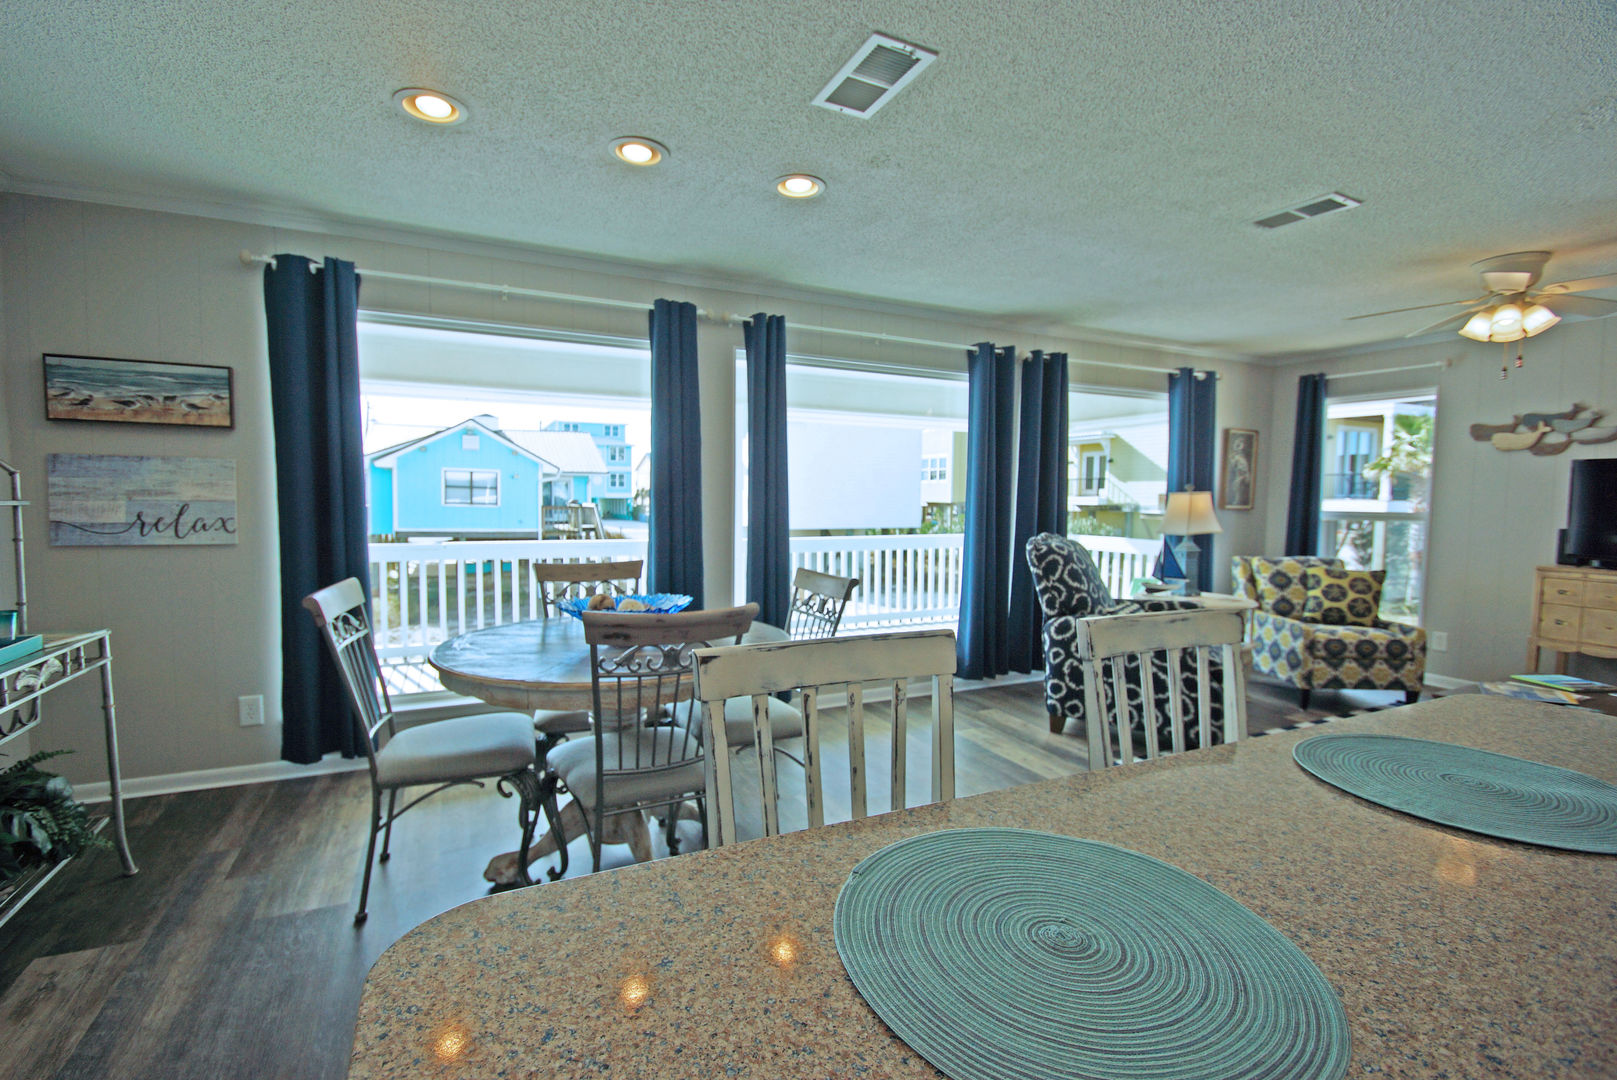 Kitchen Counter, Stools, Dining Table, Chairs, Arm Chairs, and Windows.